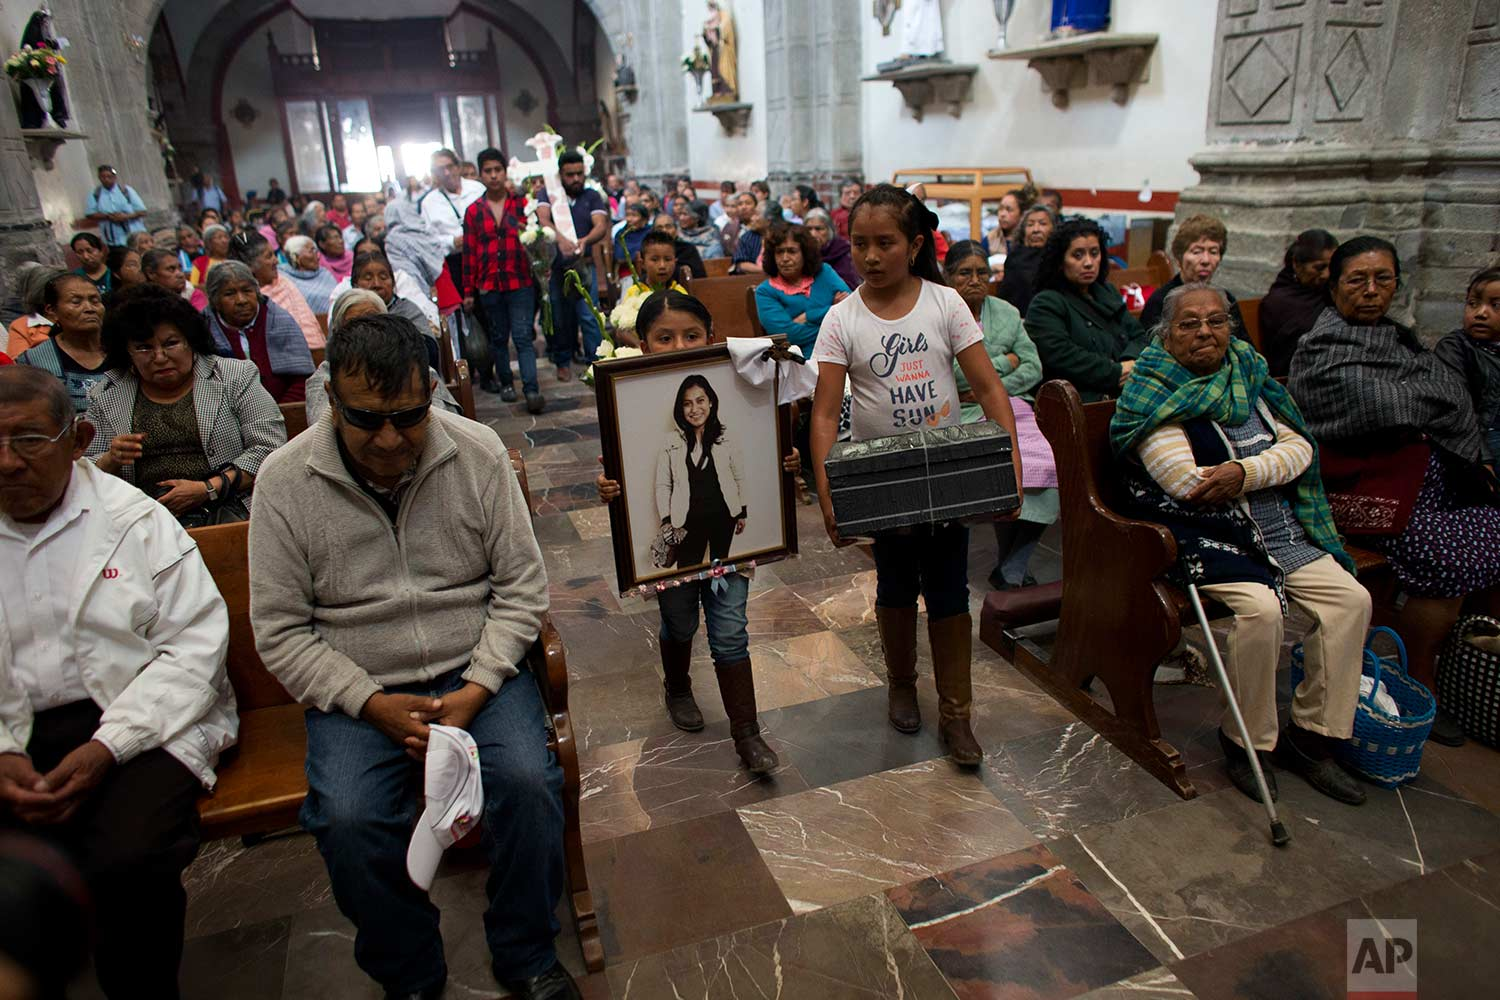 In this Aug. 18, 2017 photo, relatives of murdered doctor and mother, Jessica Sevilla Pedraza, carry a framed portrait of her, a cross, and a box of mementos to be buried alongside her grave, as they arrive for Mass in Villa Cuauhtemoc, Mexico state. (AP Photo/Rebecca Blackwell)